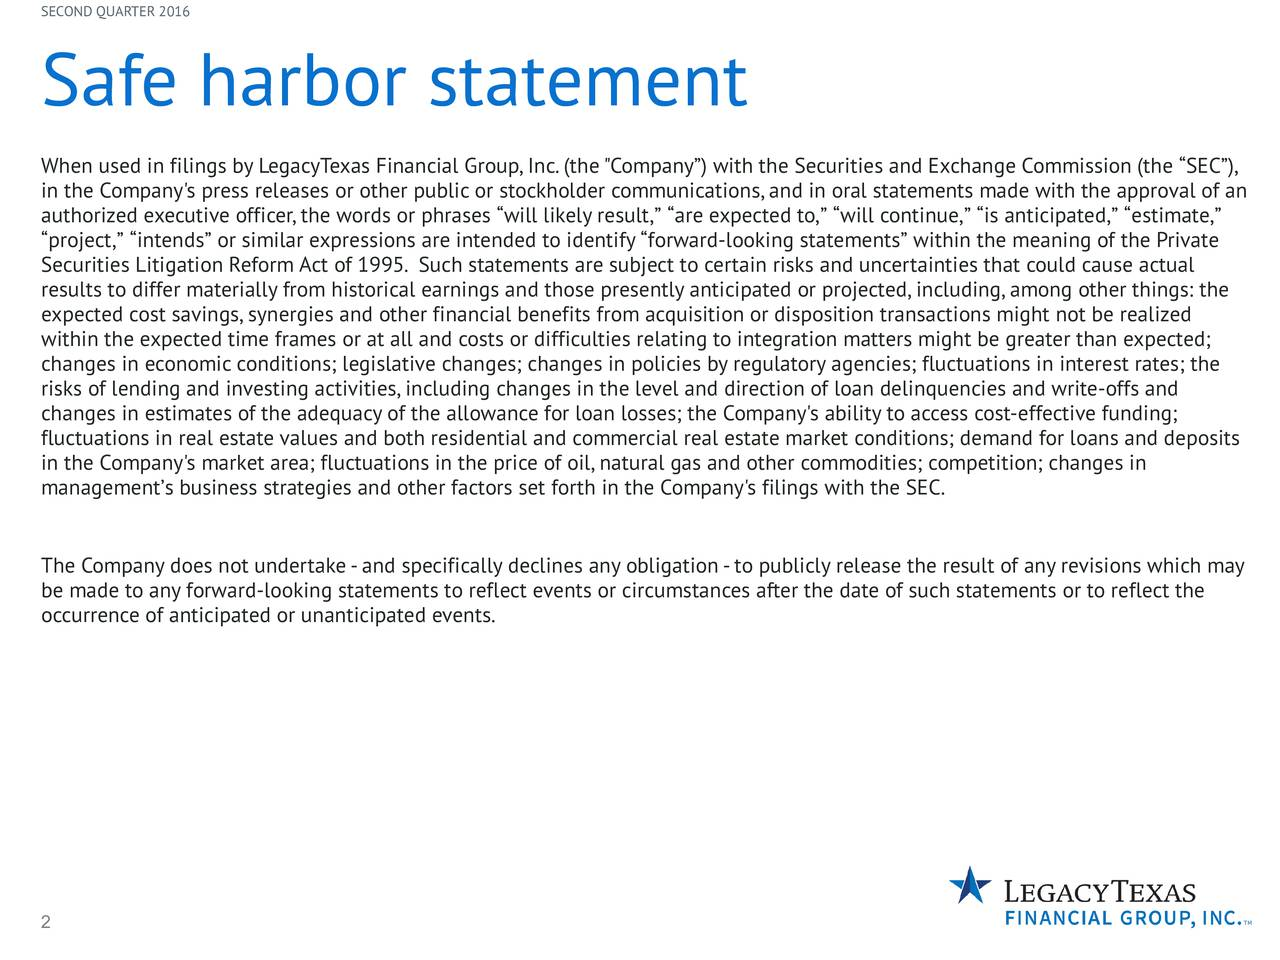 "Safe harbor statement When used in filings by LegacyTexas Financial Group,Inc.(the""Company) with the Securities and Exchange Commission (the SEC), in the Company's press releases or other public or stockholder communications,and in oral statements made with the approval of an authorized executive officer,the words or phrases will likely result, are expected to, will continue, is anticipated, estimate, project, intends or similar expressions are intended to identify forward-looking statements within the meaning of the Private Securities Litigation Reform Act of 1995. Such statements are subject to certain risks and uncertainties that could cause actual results to differ materially from historical earnings and those presently anticipated or projected,including,among other things: the expected cost savings,synergies and other financial benefits from acquisition or disposition transactions might not be realized within the expected time frames or at all and costs or difficulties relating to integration matters might be greater than expected; changes in economic conditions; legislative changes; changes in policies by regulatory agencies; fluctuations in interest rates; the risks of lending and investing activities,including changes in the level and direction of loan delinquencies and write-offs and changes in estimates of the adequacy of the allowance for loan losses; the Company's ability to access cost-effective funding; fluctuations in real estate values and both residential and commercial real estate market conditions; demand for loans and deposits in the Company's market area; fluctuations in the price of oil,natural gas and other commodities; competition; changes in managements business strategies and other factors set forth in the Company's filings with the SEC. The Company does not undertake-and specifically declines any obligation-to publicly release the result of any revisions which may be made to any forward-looking statements to reflect events or circumstances after the date of such statements or to reflect the occurrence of anticipated or unanticipated events. 2"